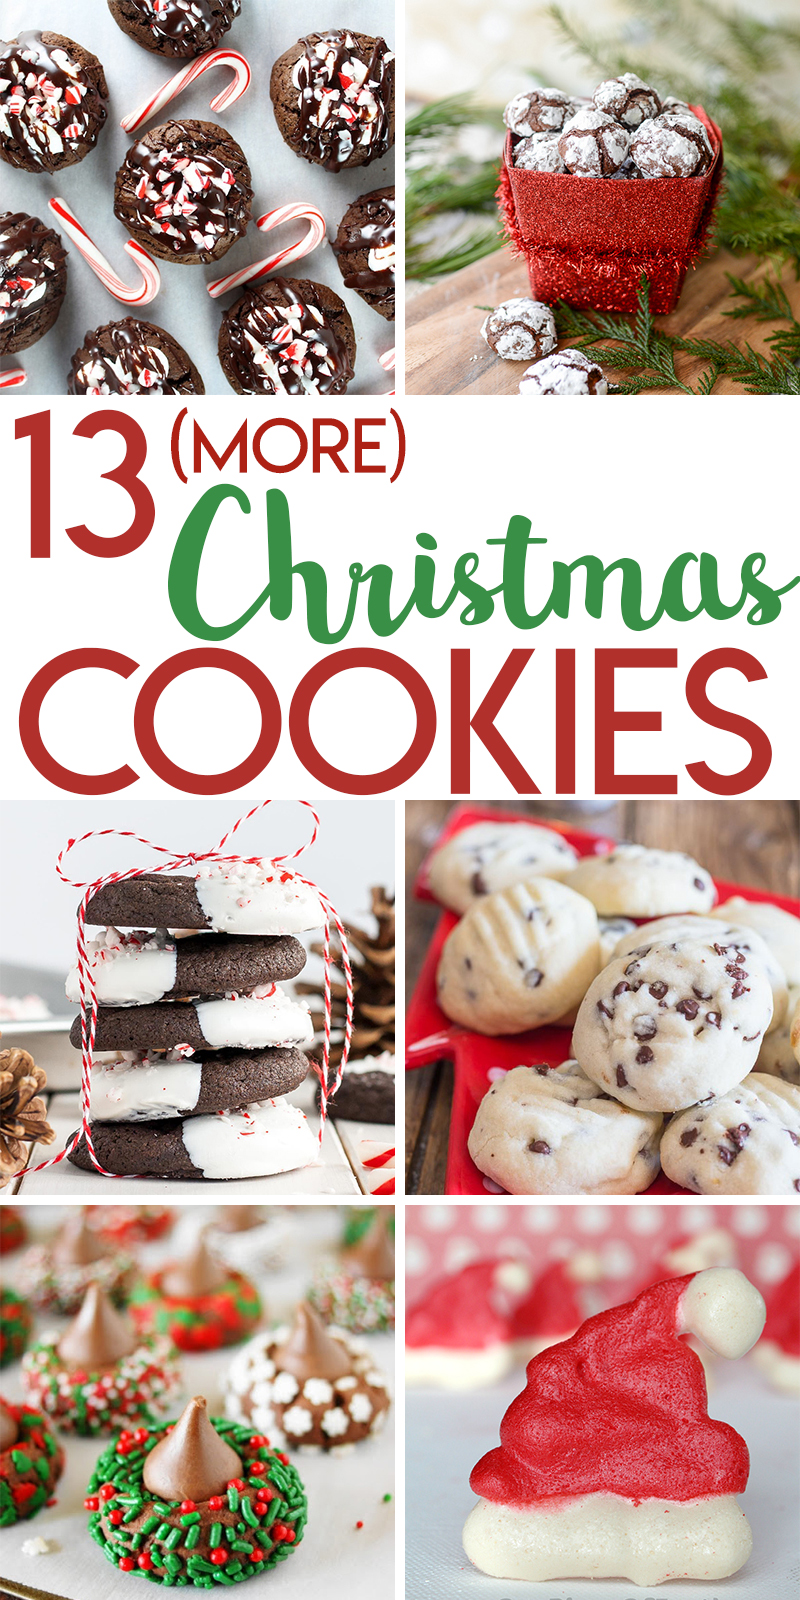 13 delicious Christmas cookie recipes to bake this holiday season